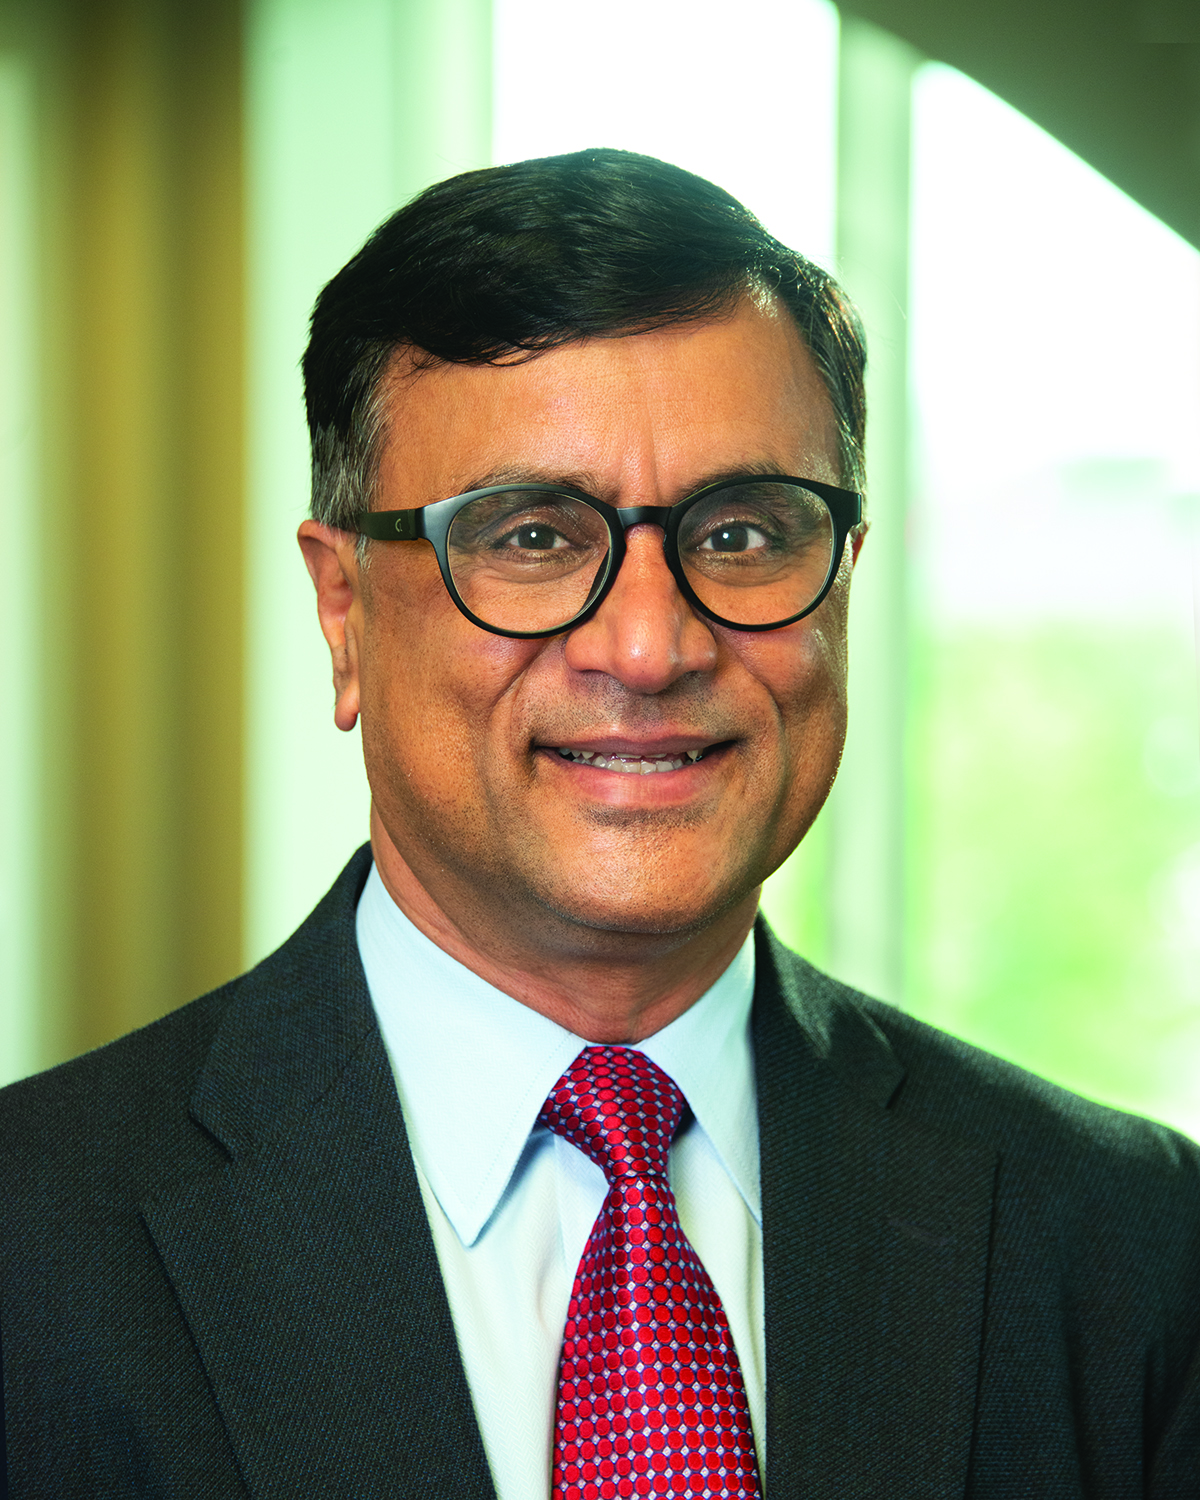 Vipin Khetarpal, MD - An Independent Provider of Memorial Healthcare